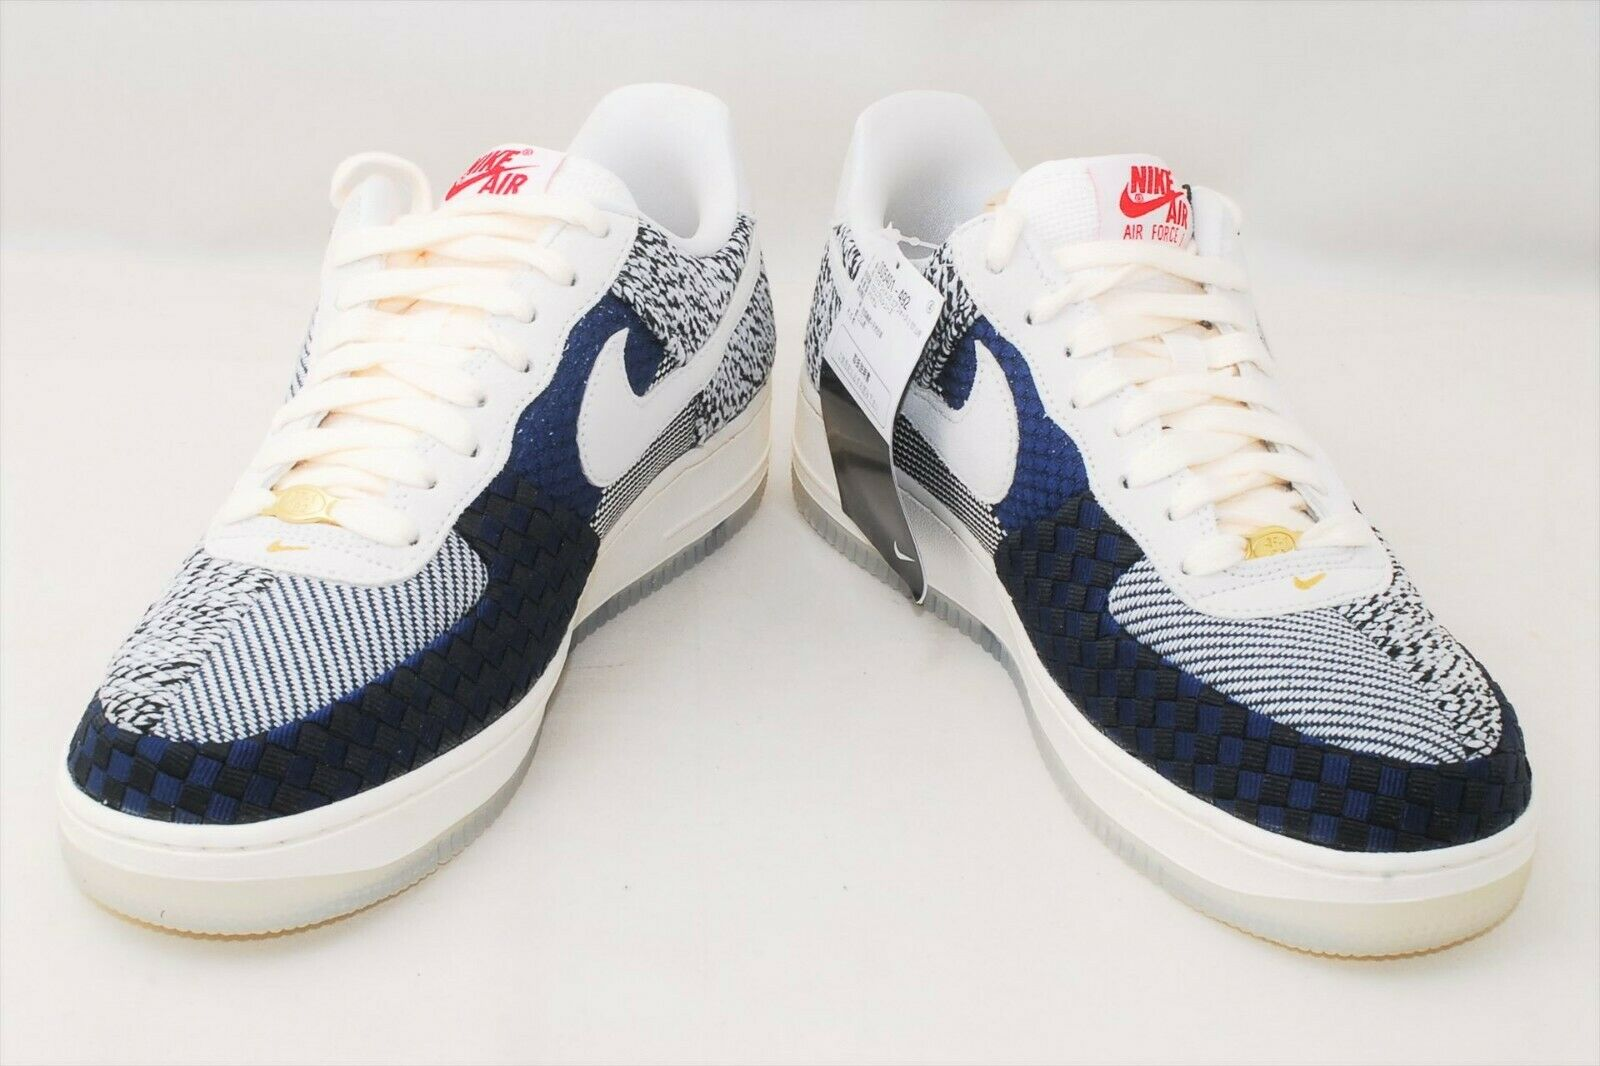 Size 12 - Nike Air Force 1 Low Sashiko for sale online | eBay